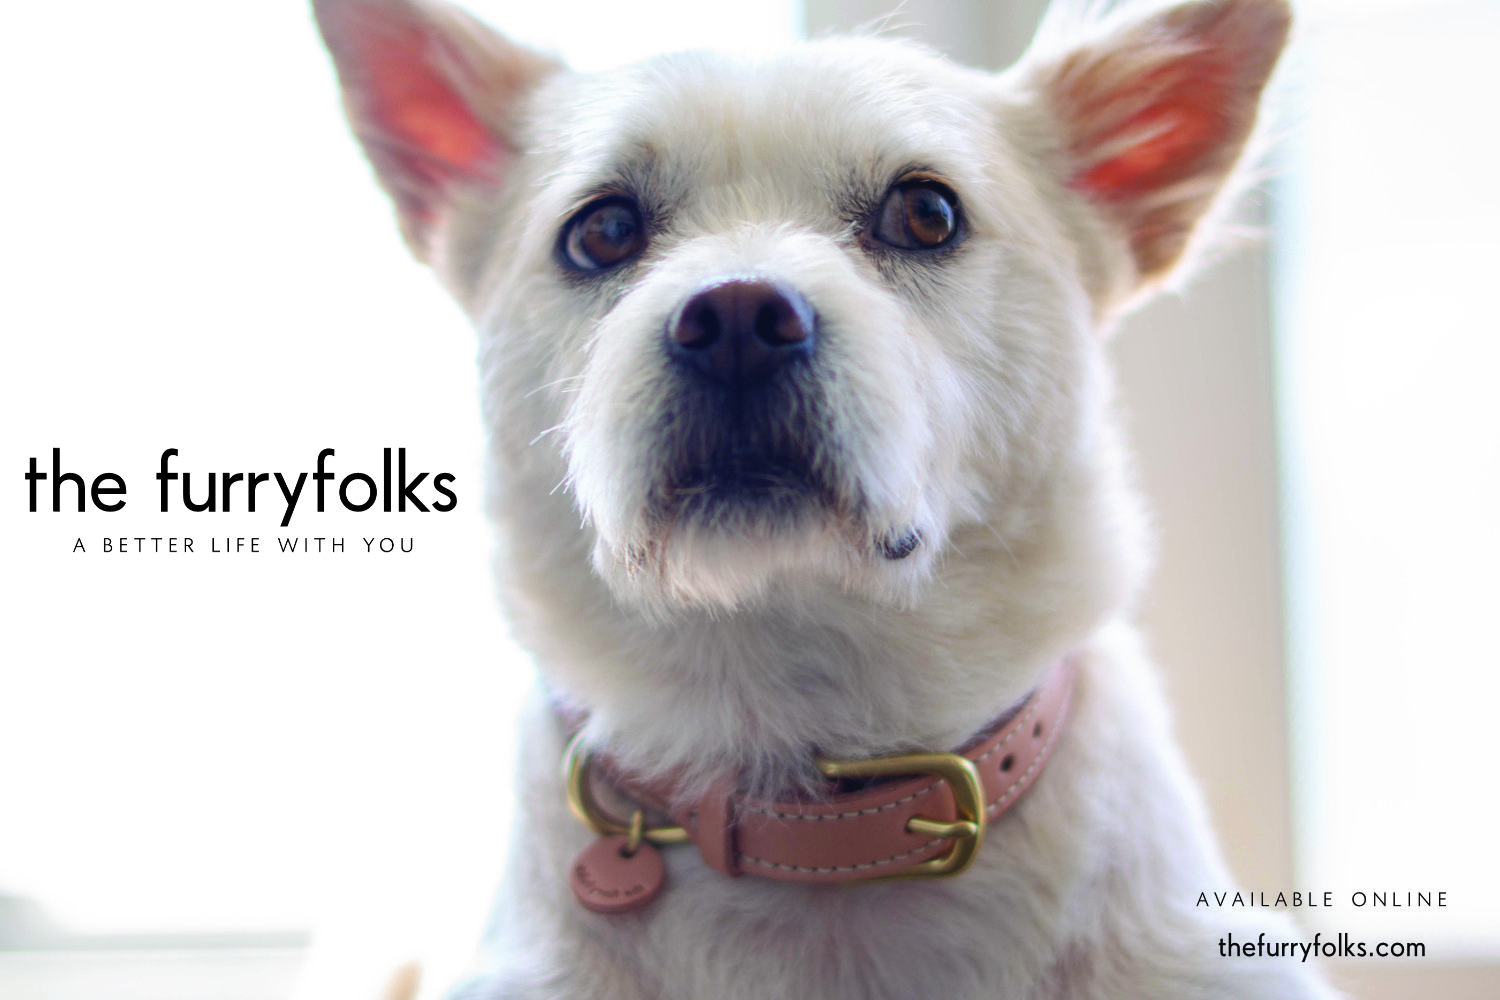 The Furryfolks Is A Lifestyle Brand For The Animal Companions We Create Timeless Pet Products Using Only High Quality Cute Animals Animal Companions Animals